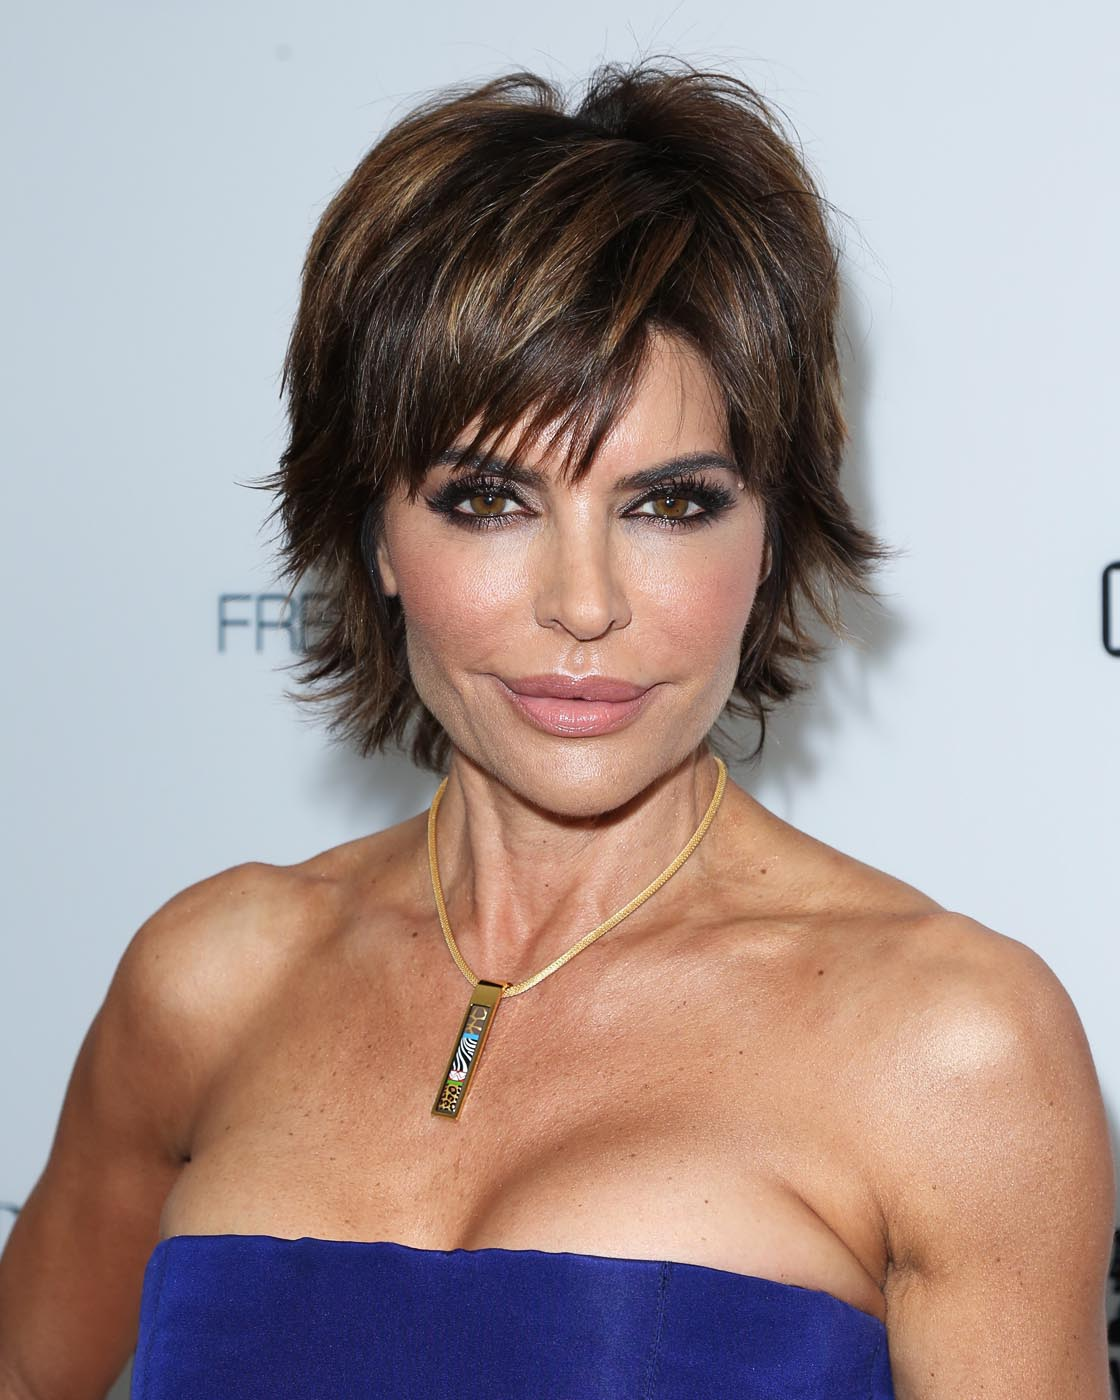 The best haircuts for women in their 40s, 50s and 60s - AOL.com